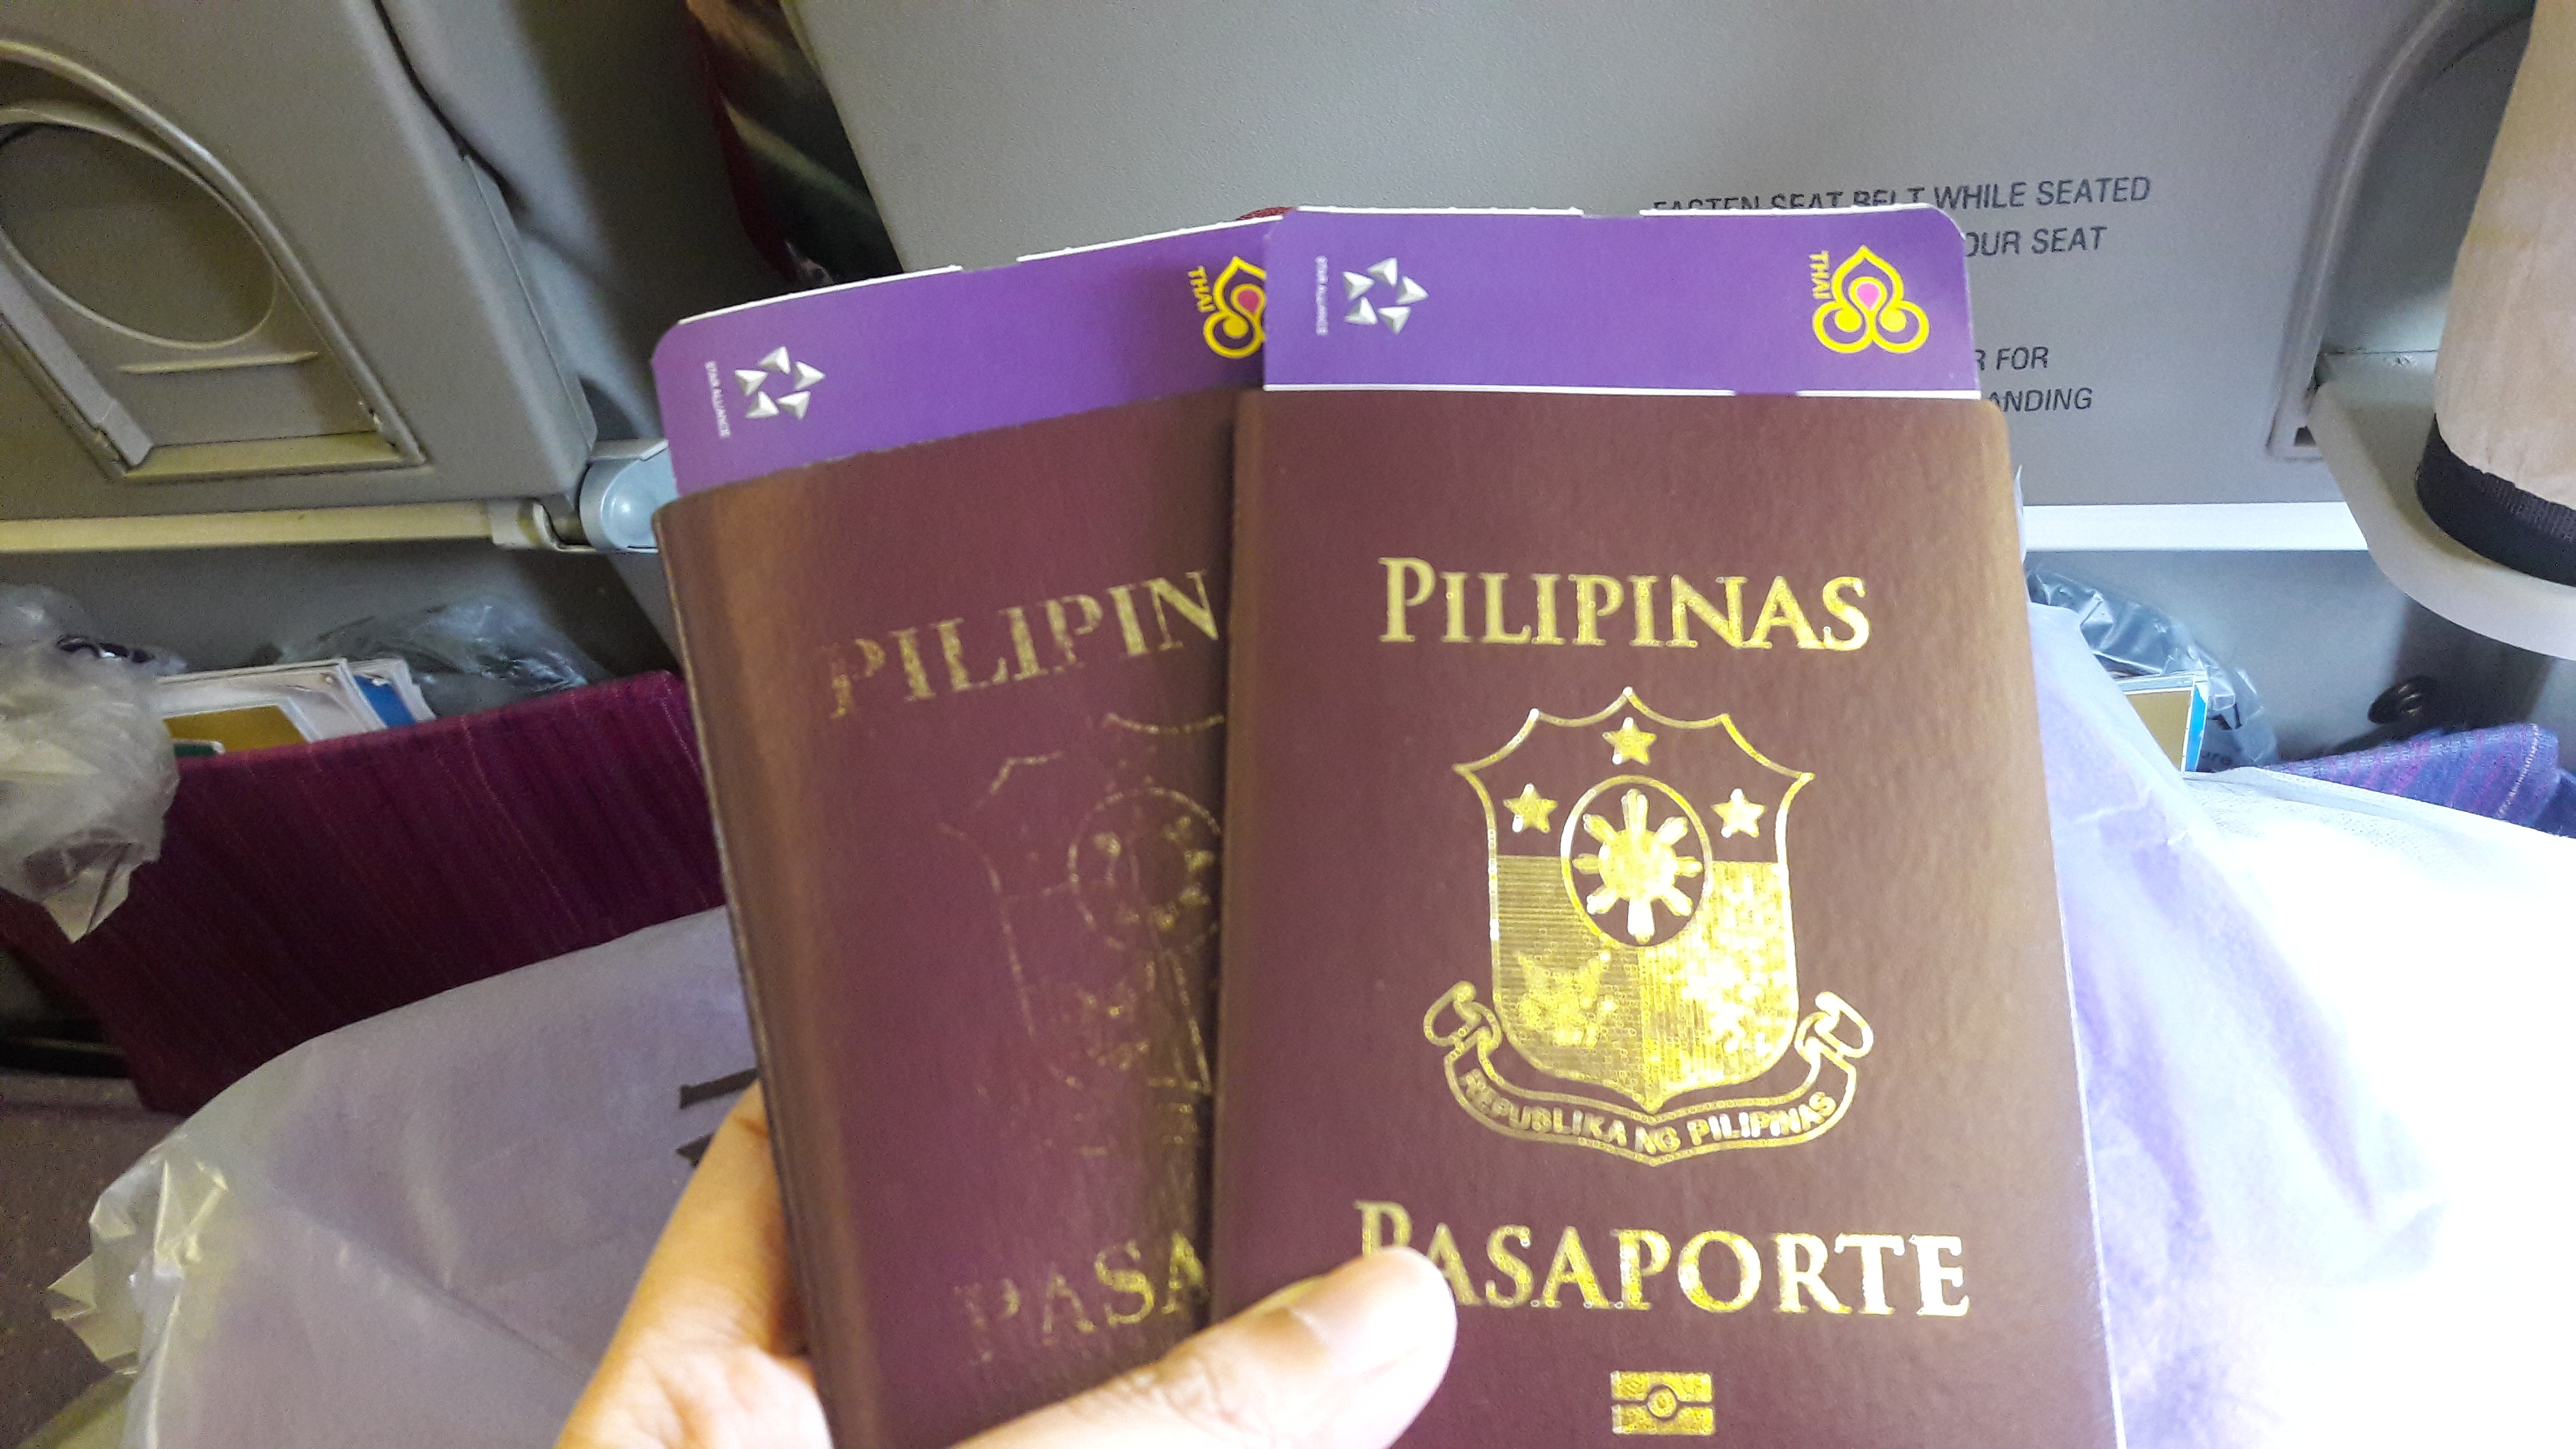 Our passports!